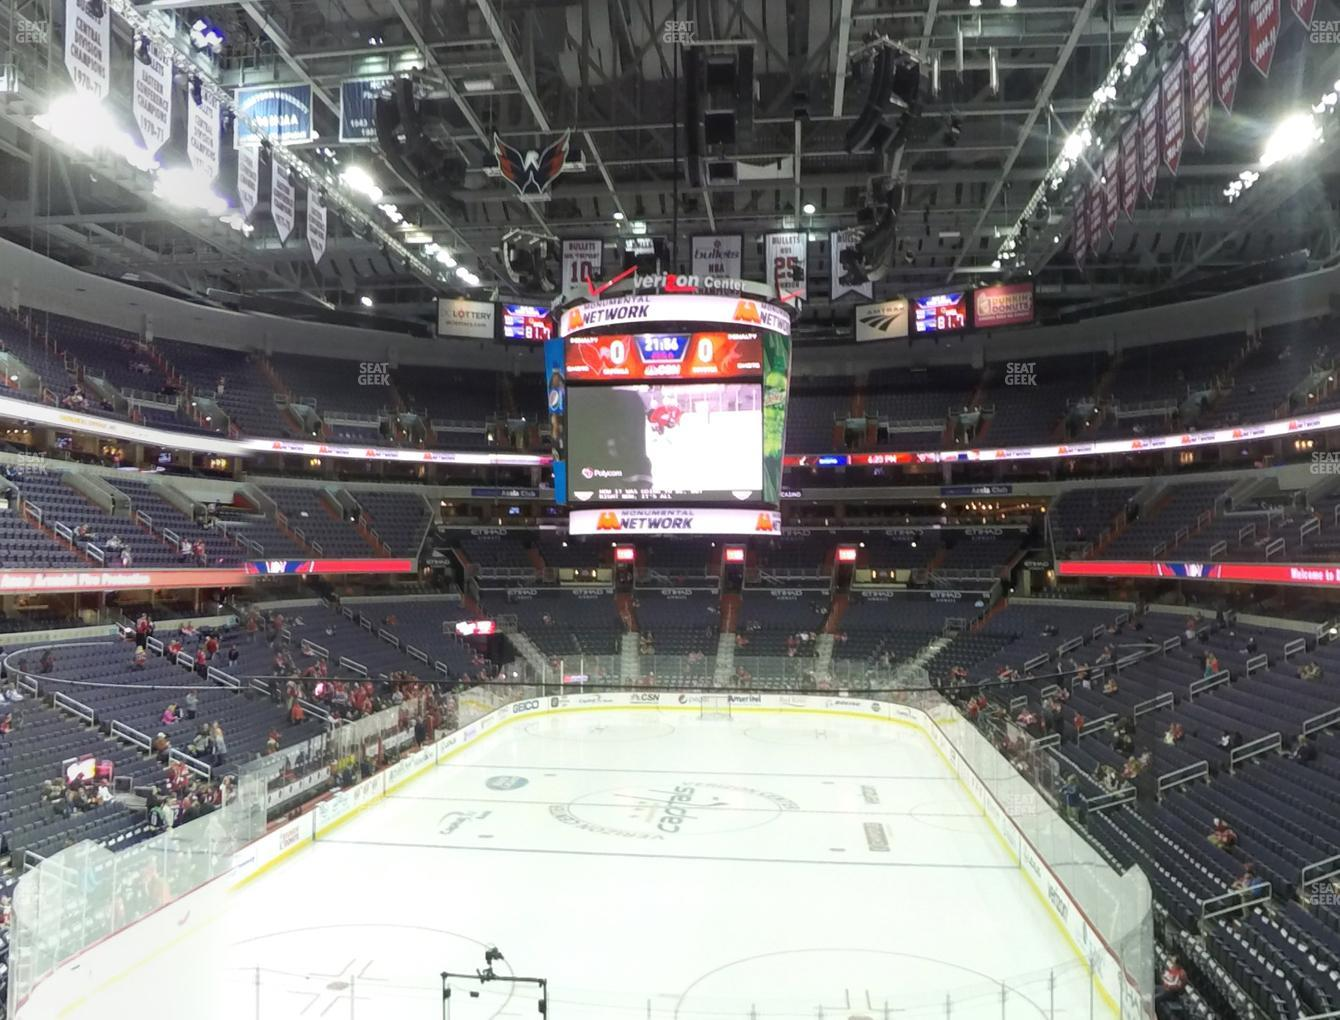 Washington Capitals at Capital One Arena Suite 106 View